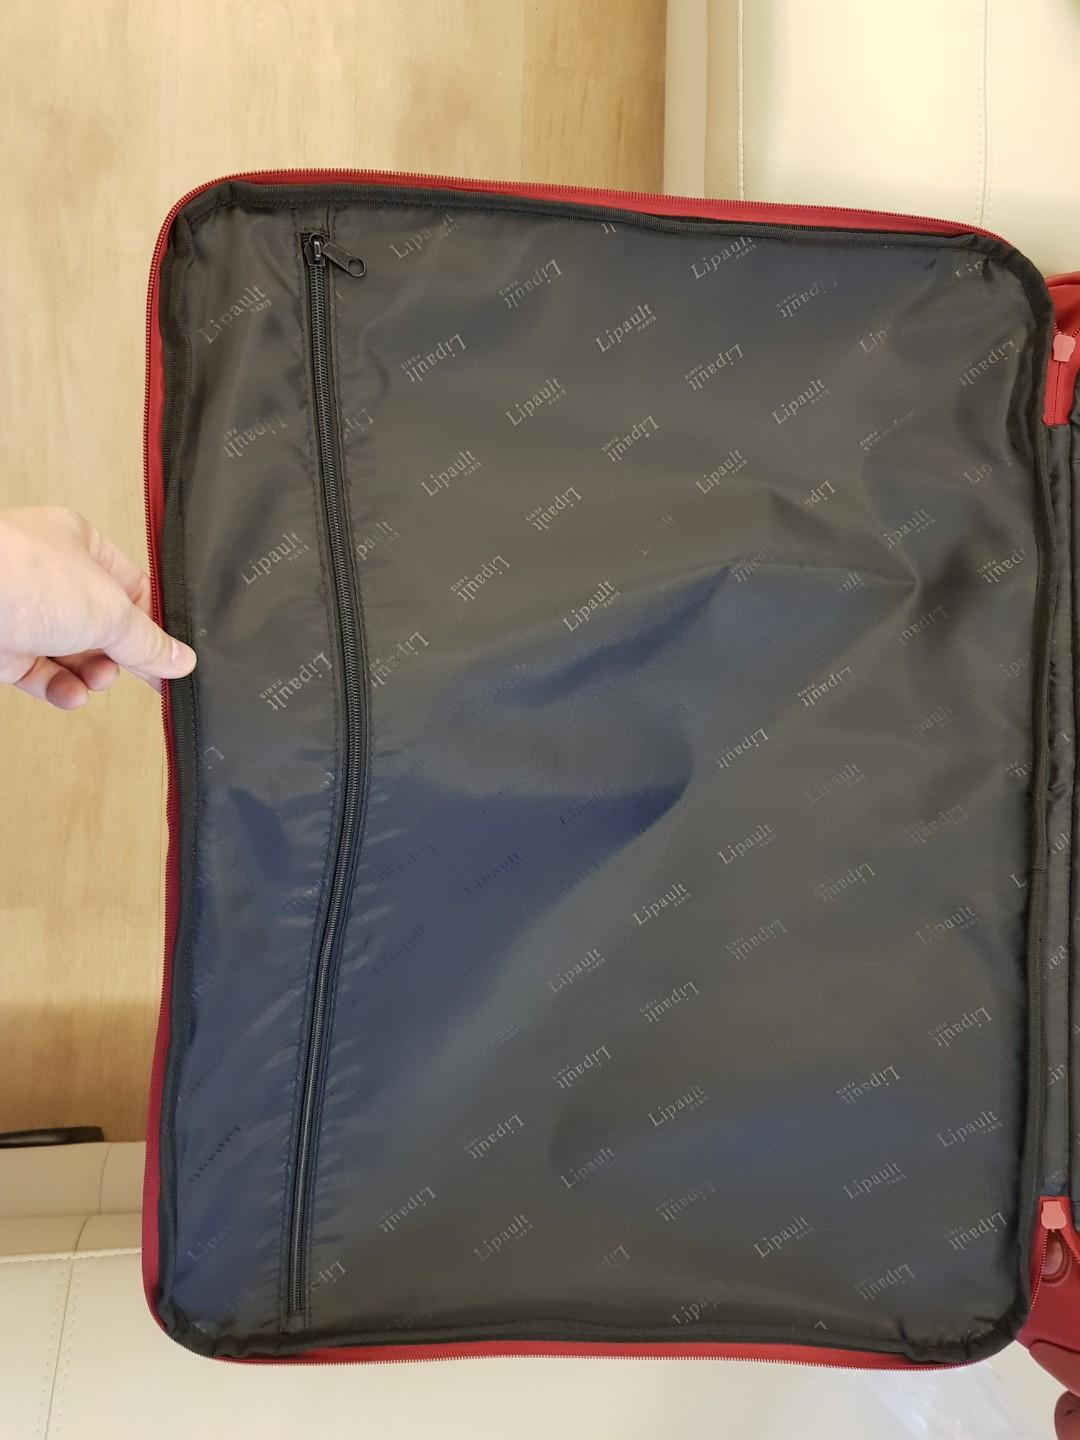 Lipault 26 inch Luggage (Brand New!)